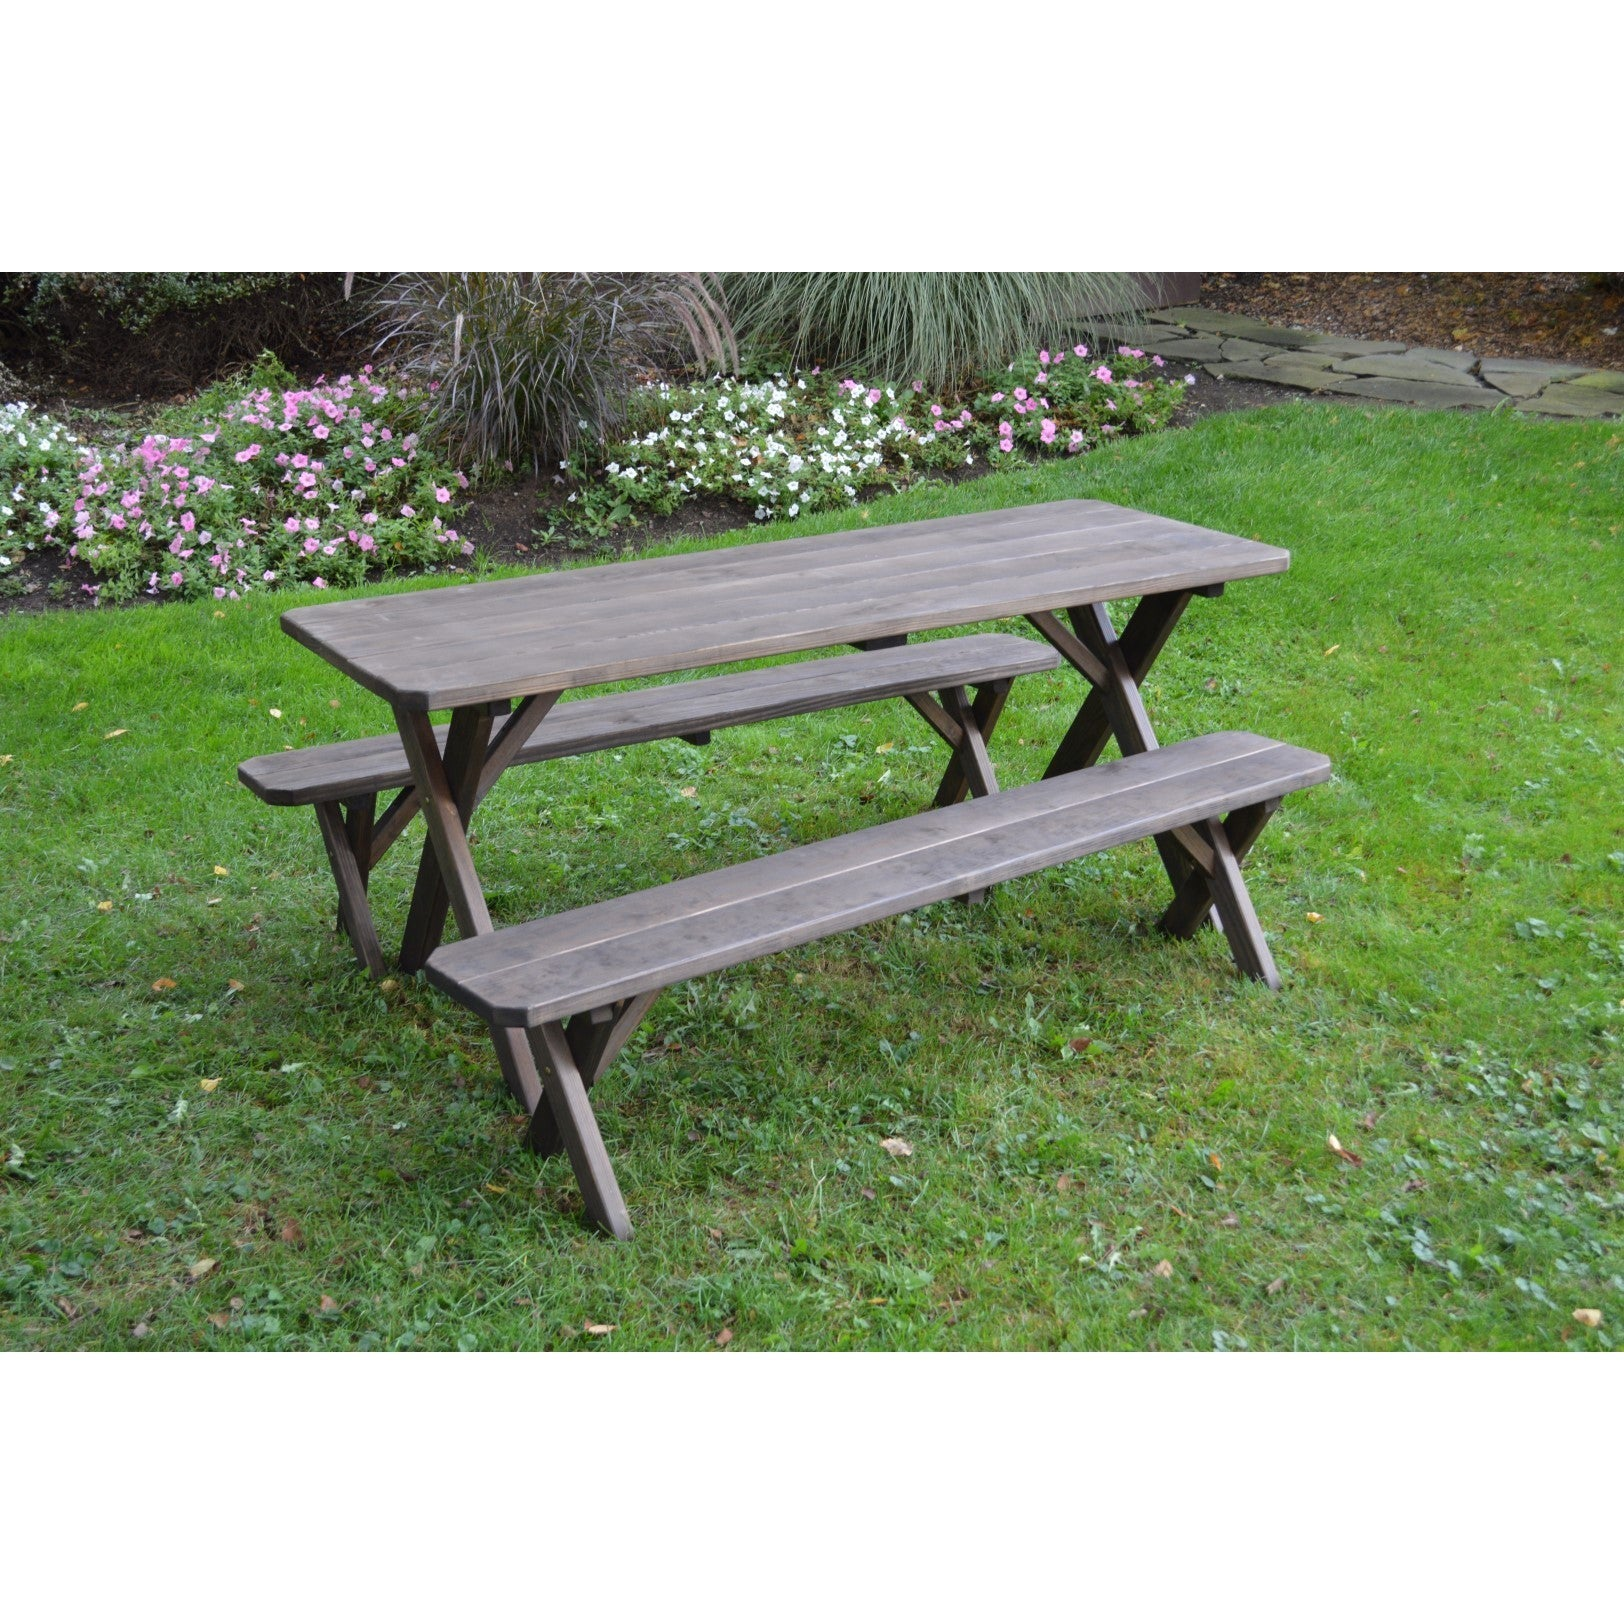 Remarkable Cross Leg Picnic Table W Detached Benches Pressure Treated Pine In Walnut Stain Beatyapartments Chair Design Images Beatyapartmentscom